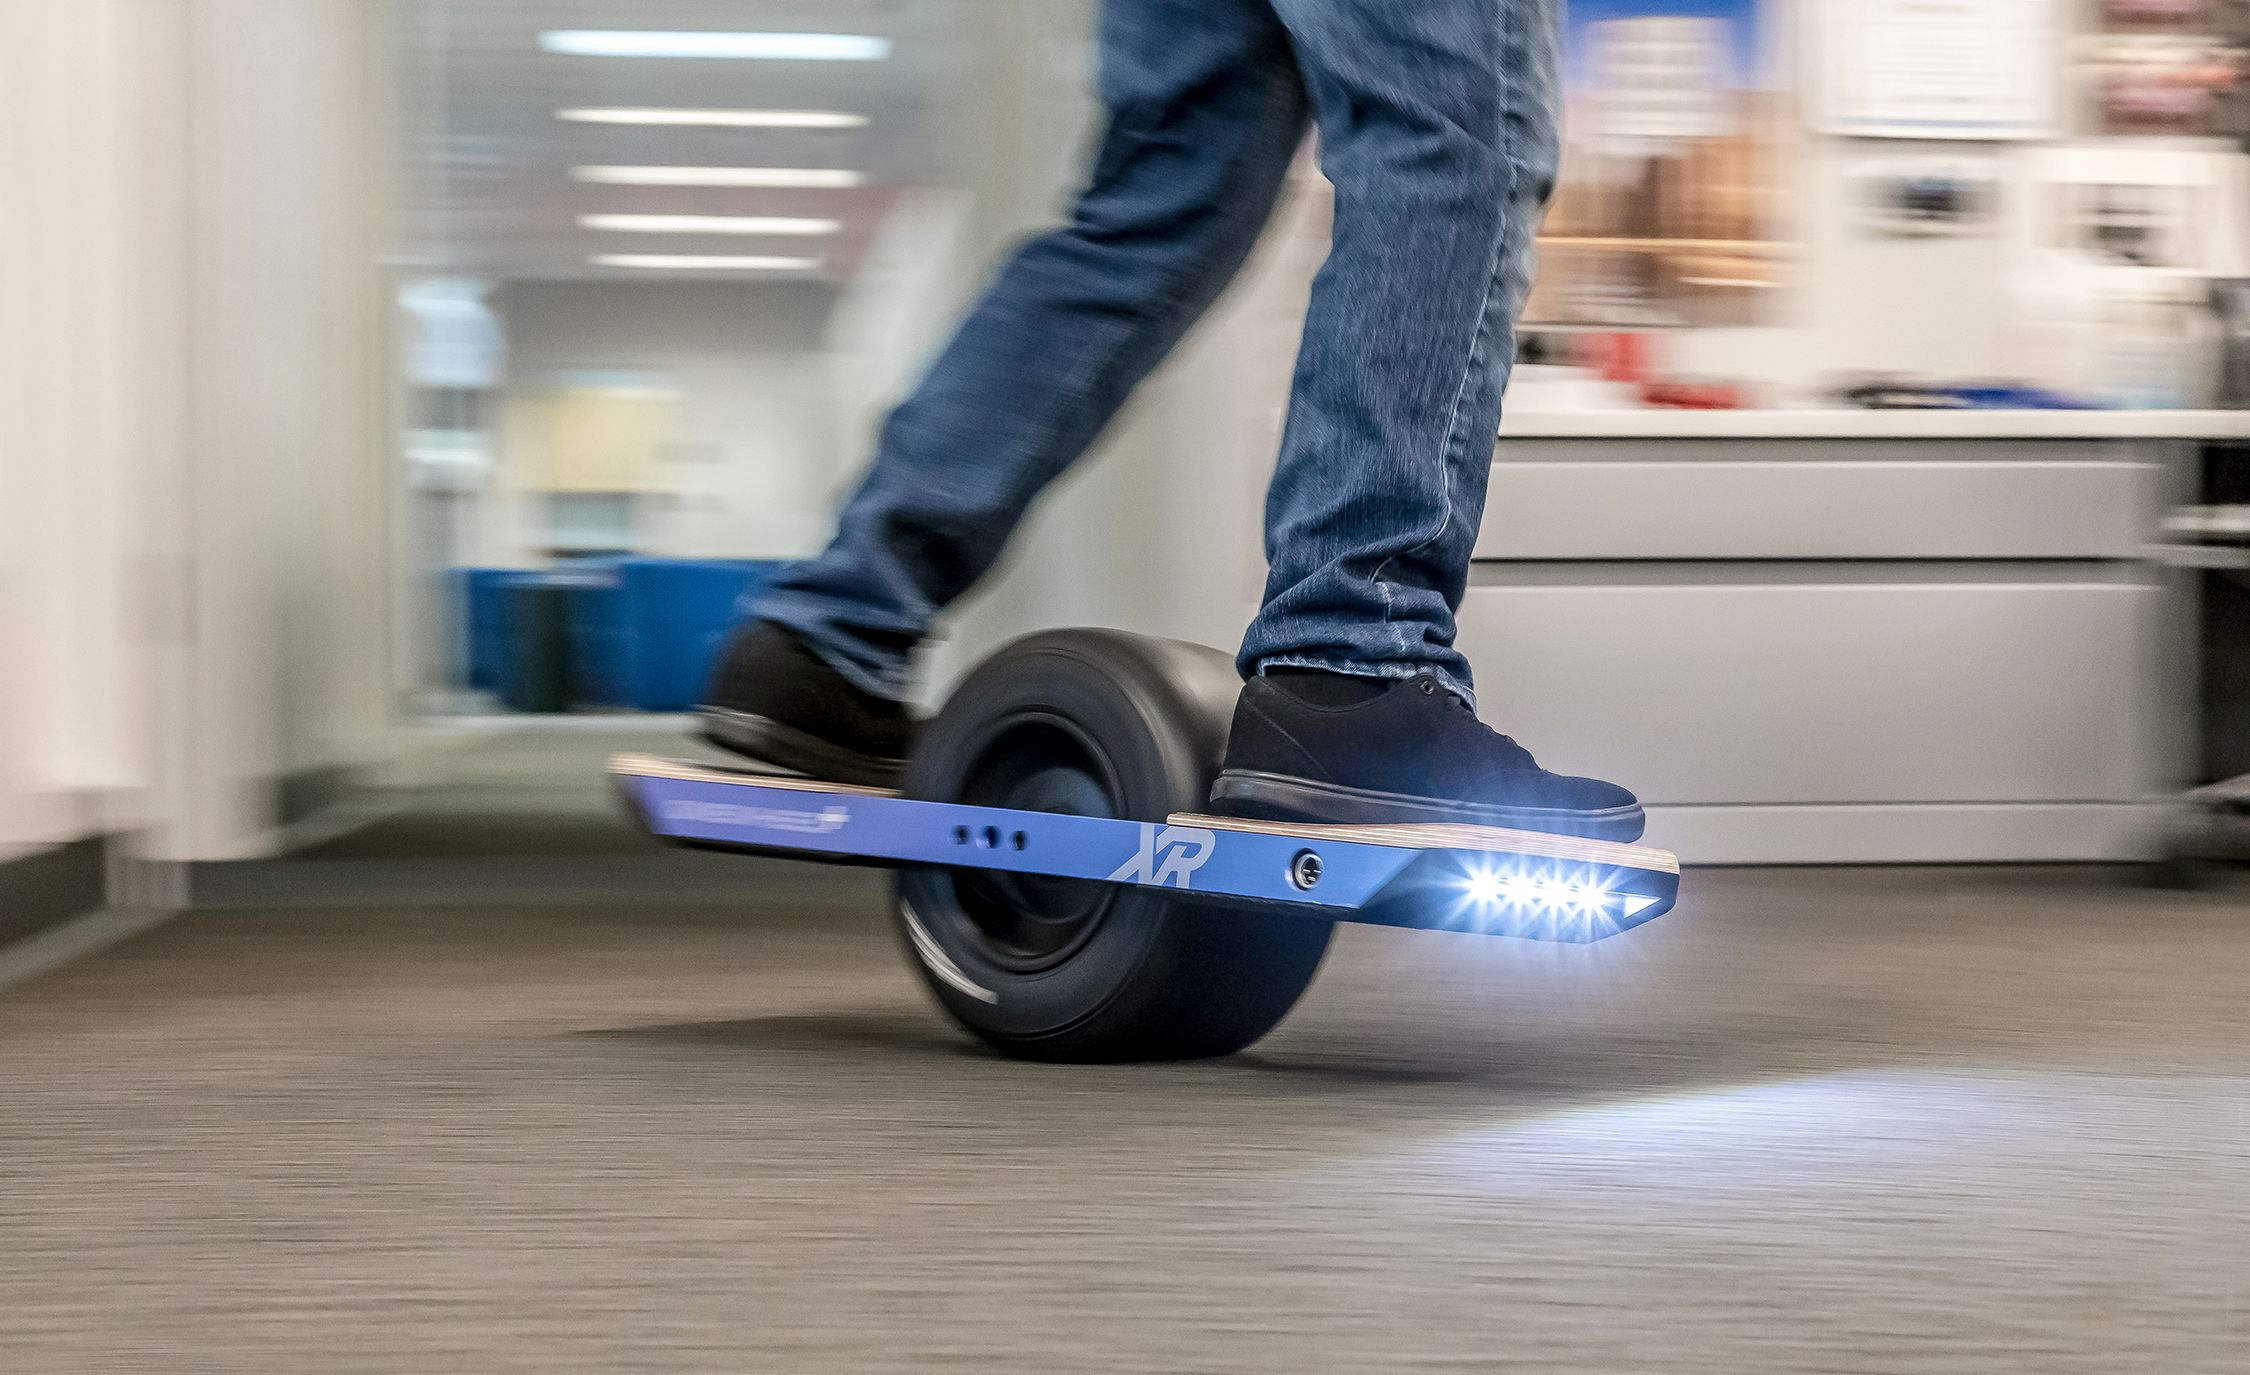 We Drive A Single Wheeled Motorized Skateboard In Our Office And No One Gets Hurt Badly